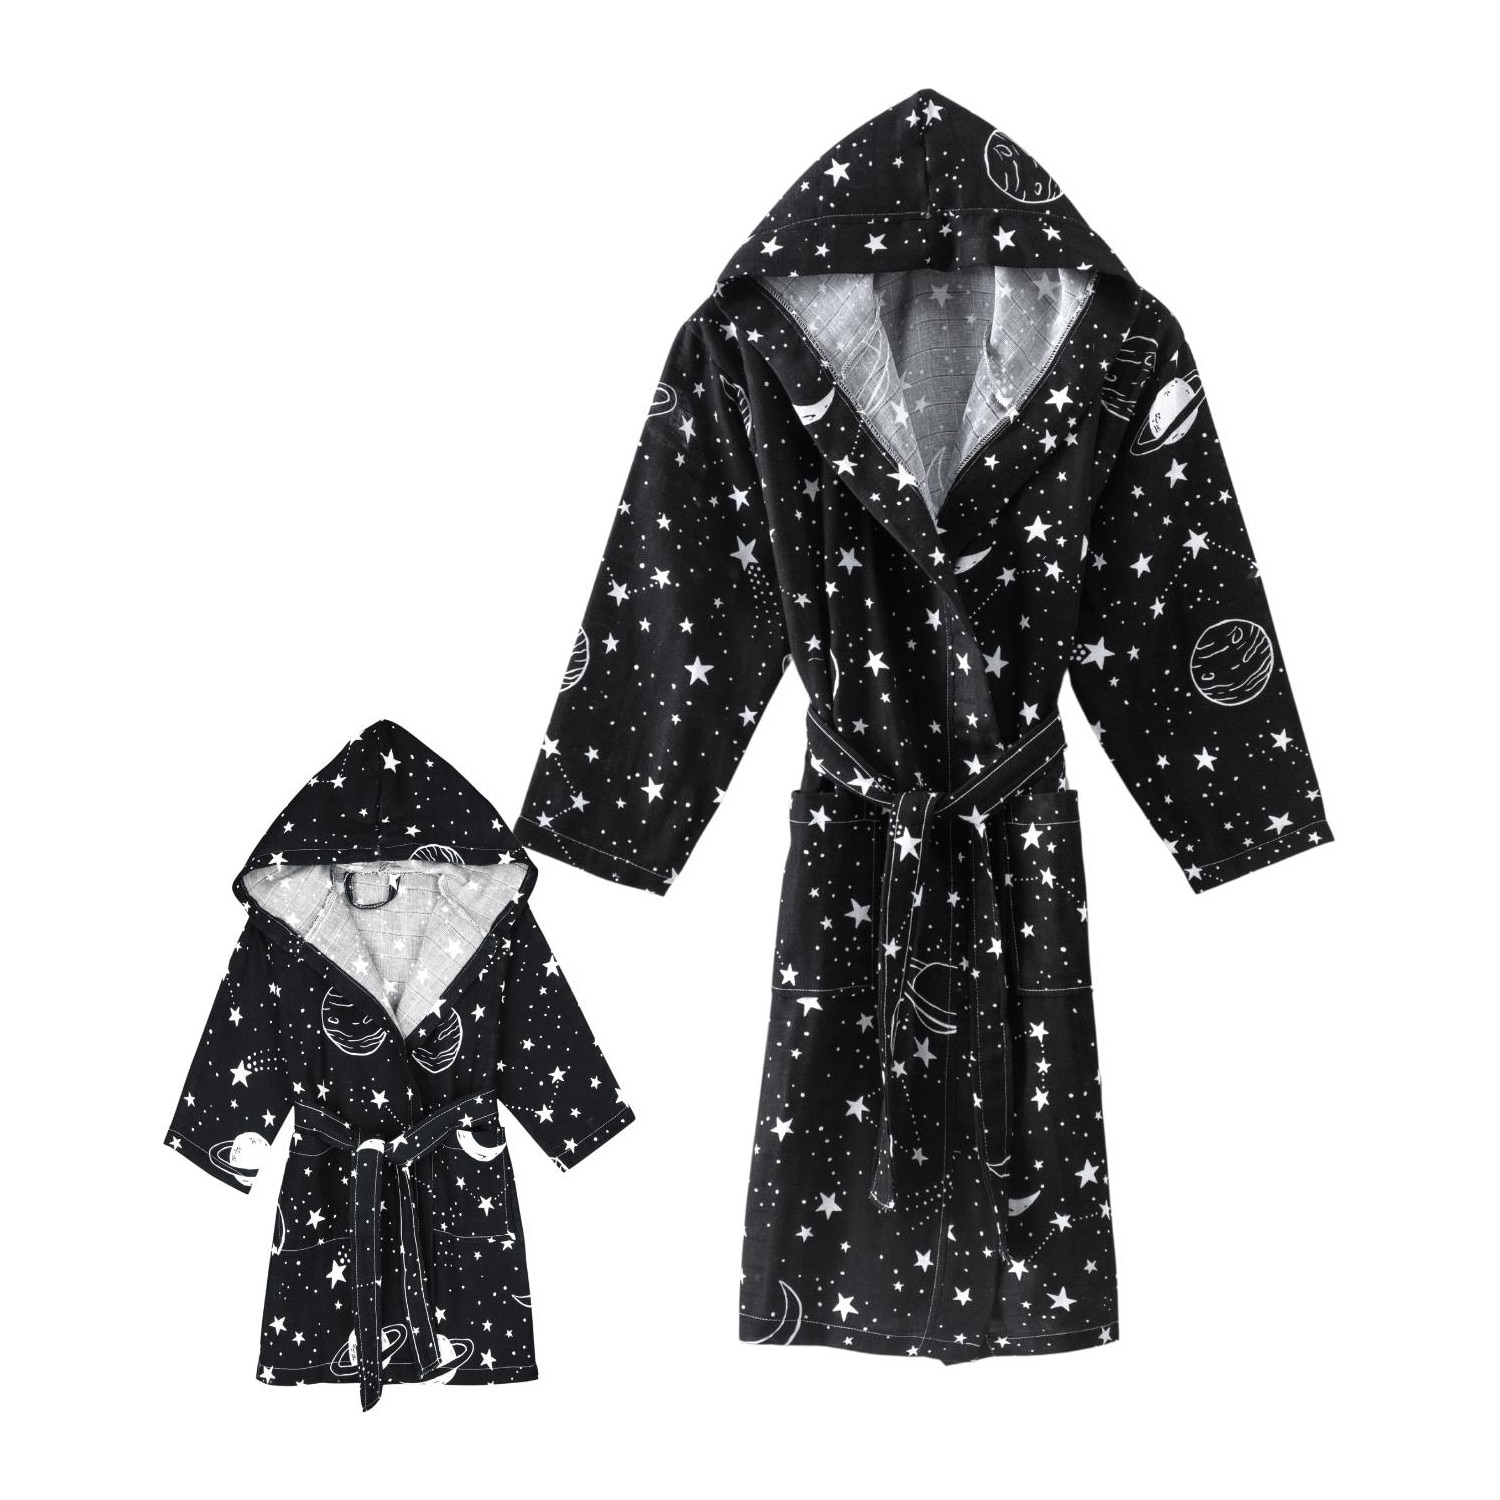 Home&bath Parent&child 2-pack Cotton Muslin Bathrobe Hubble For 5 year Old Children And Parents